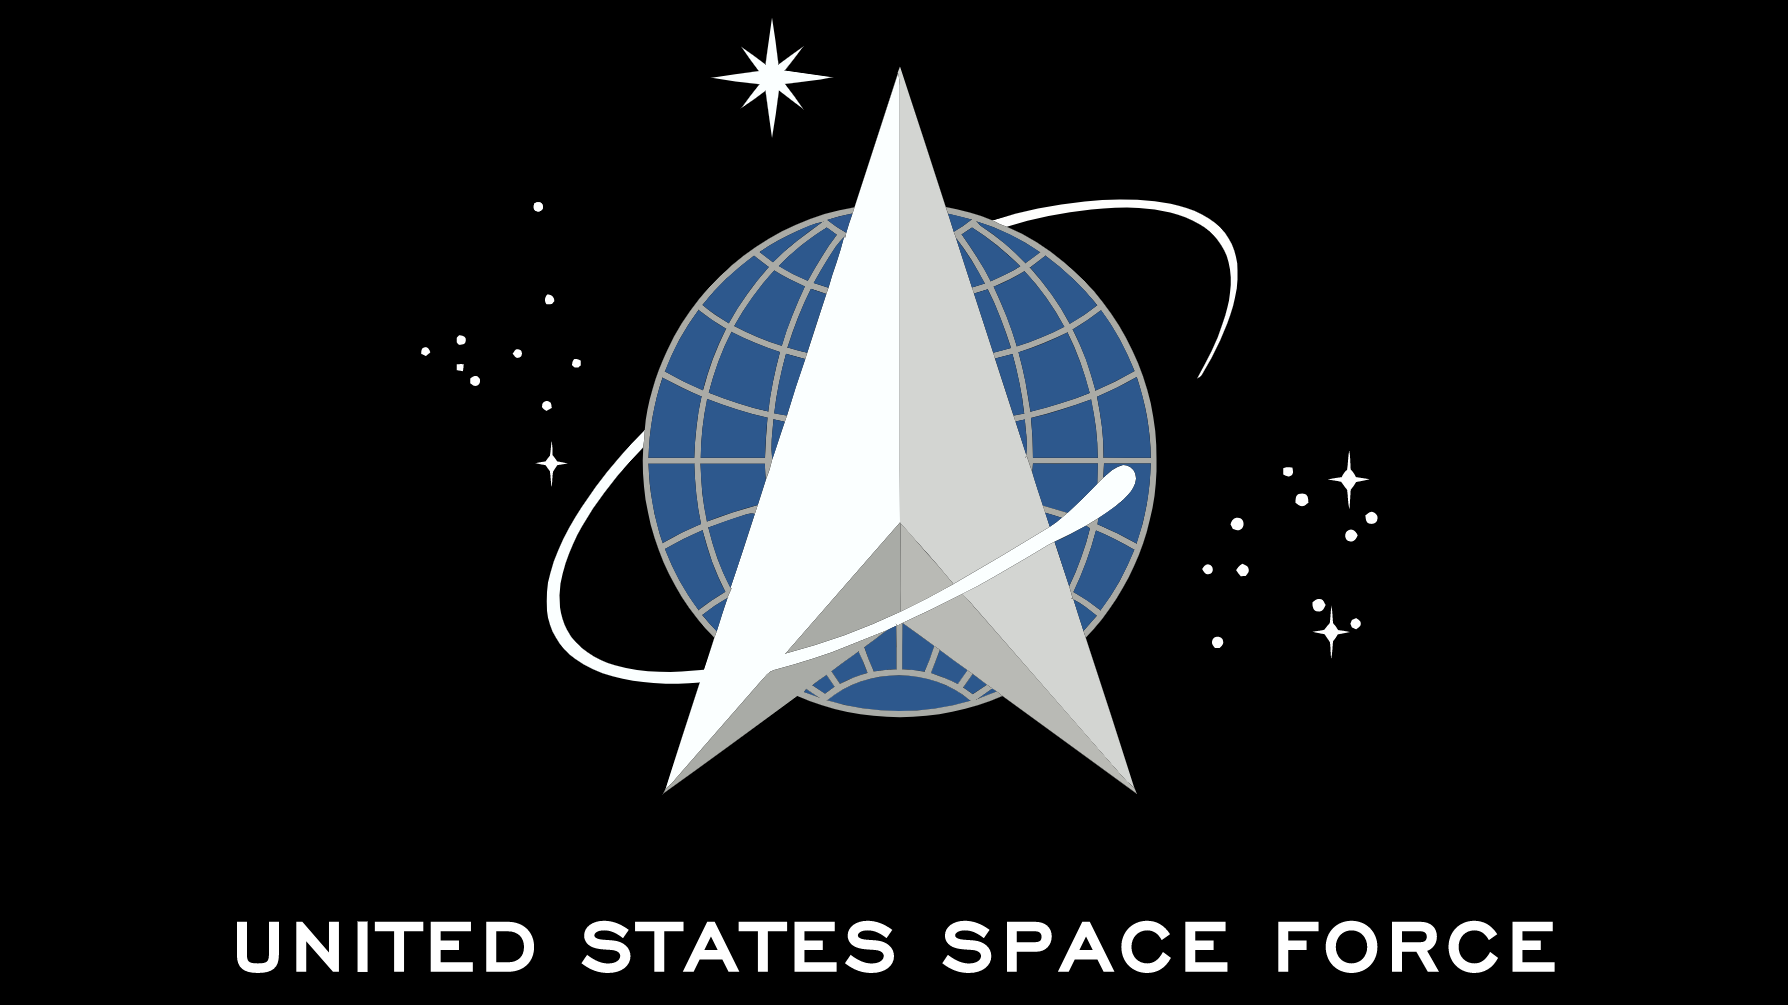 United States Space Force Facts